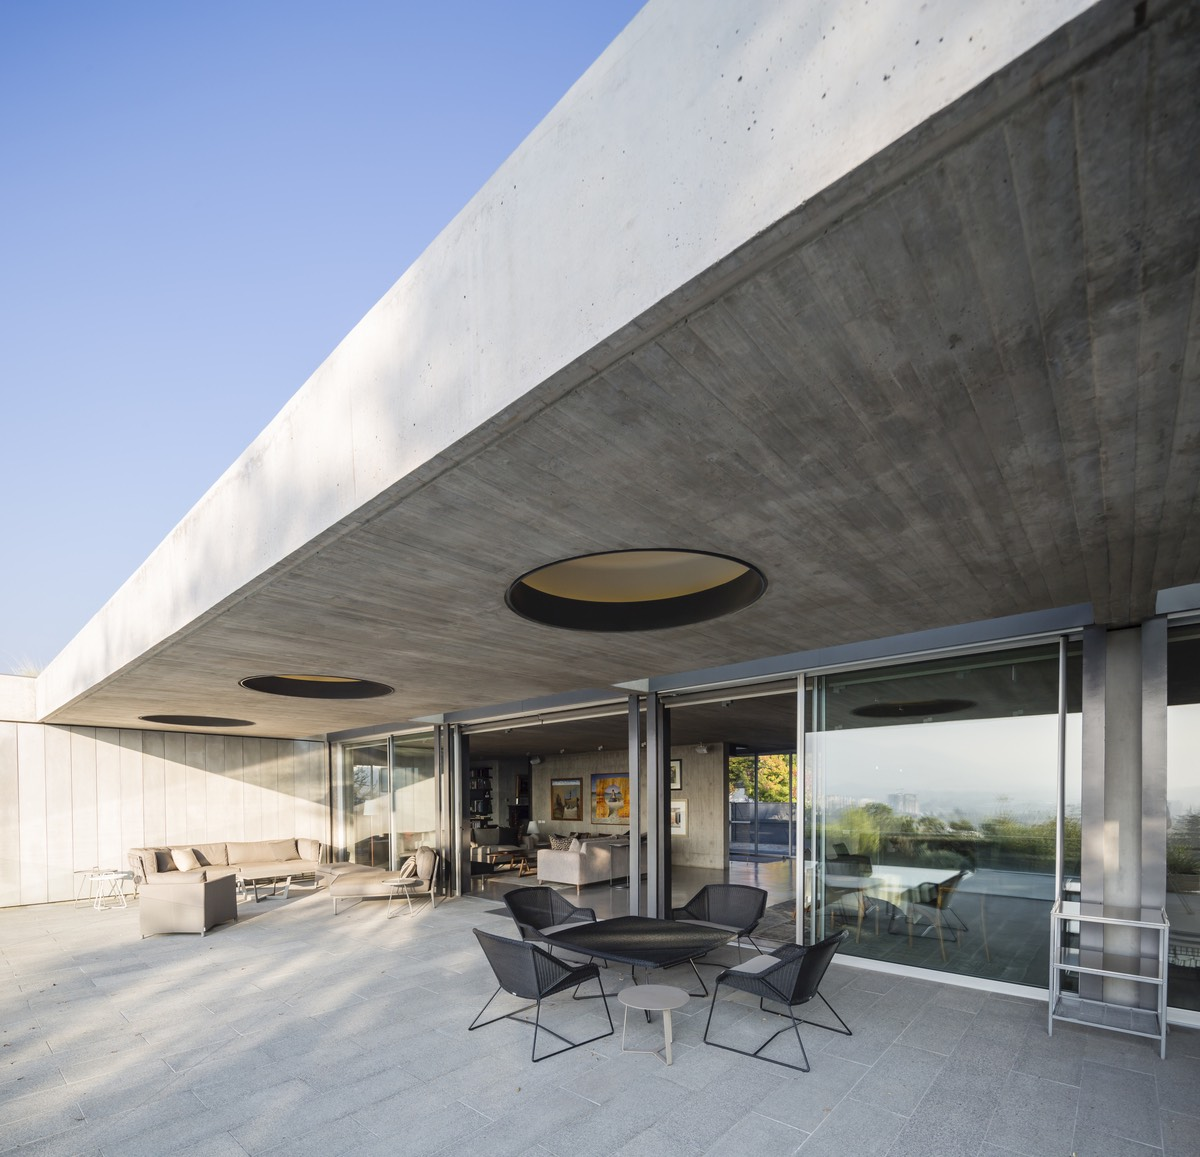 the terrace of the concrete house